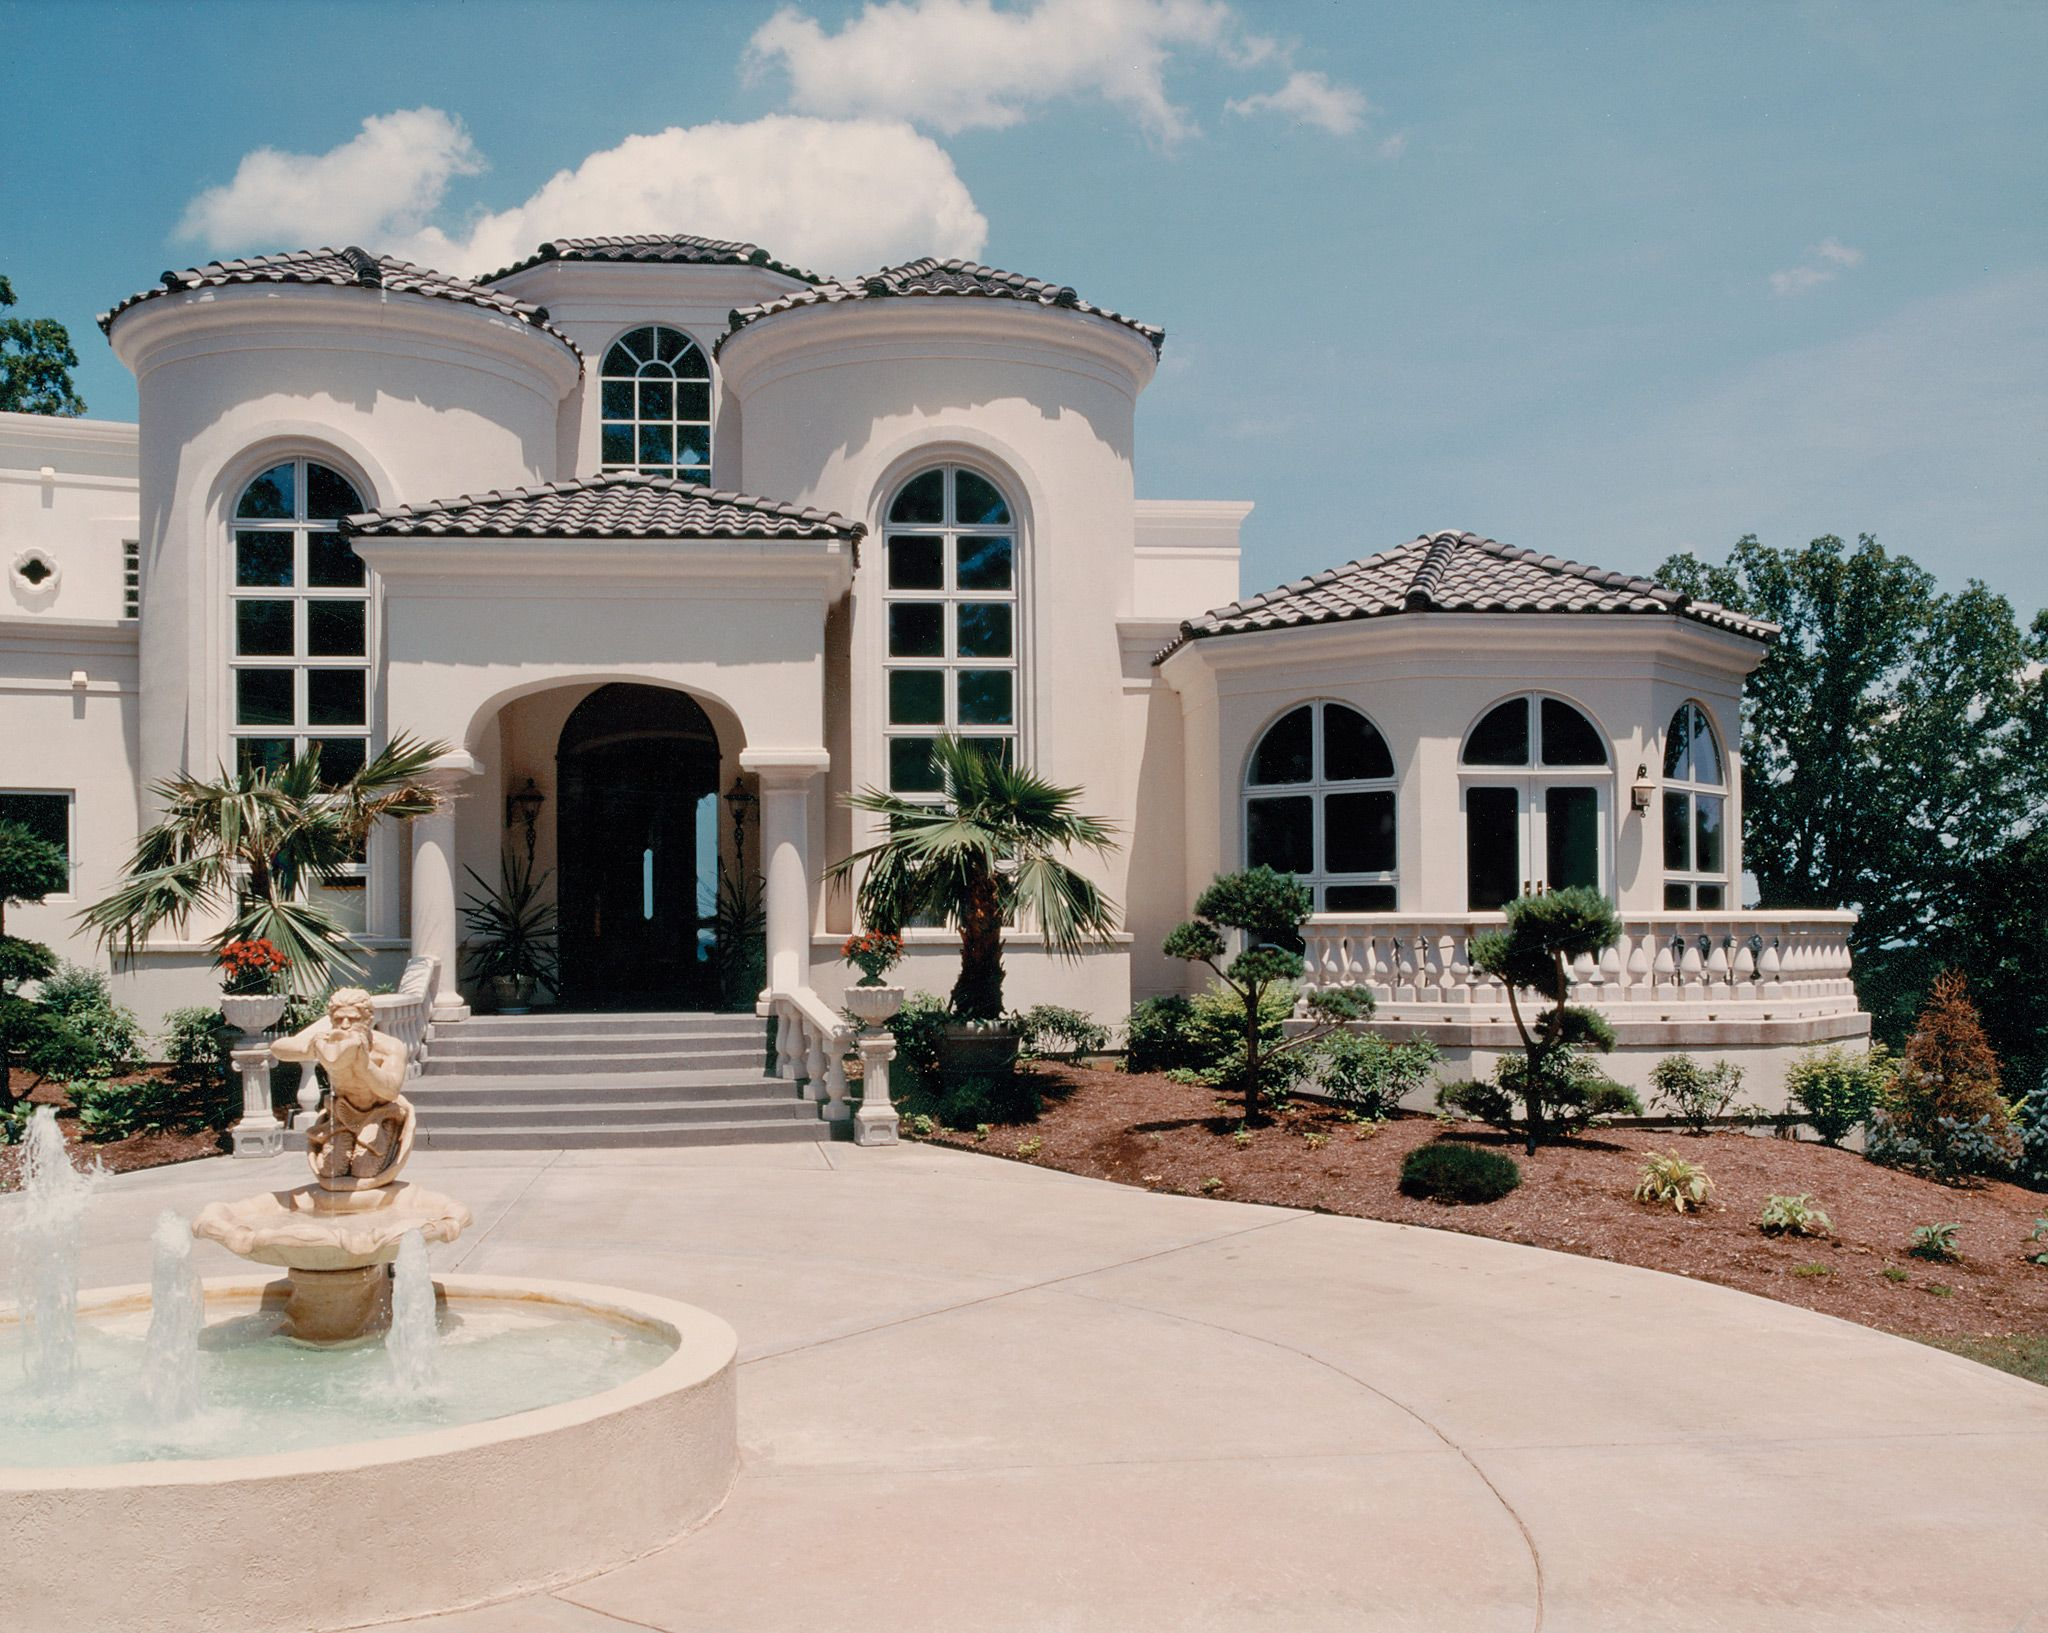 Mediterranean tuscan homes the world 39 s for Luxury home exteriors